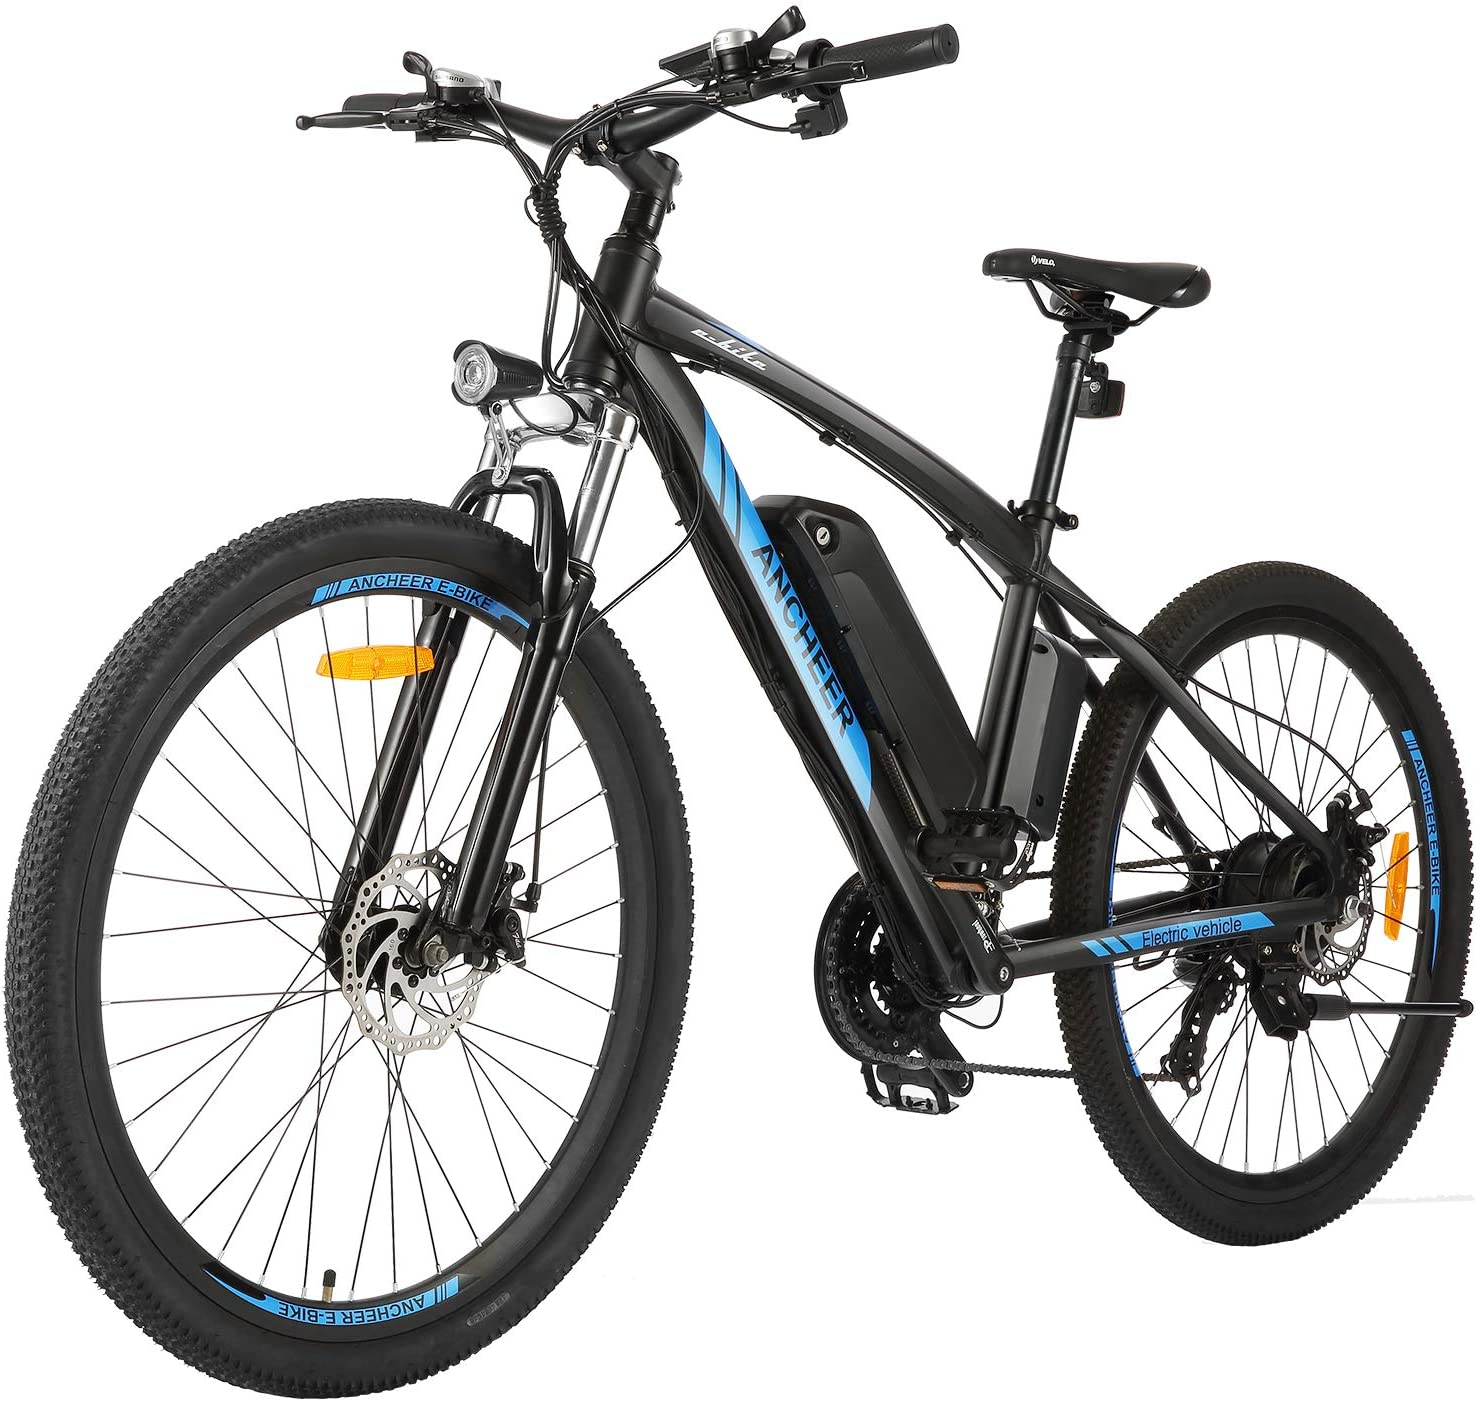 ANCHEER 27.5″ Electric Mountain Bike for Adults, 250W E-bike with 36V 10Ah Lithium-Ion Battery WAS £889.99 + £20 delivery NOW £839.99 delivery + £20 with £50 voucher on listing @ Amazon